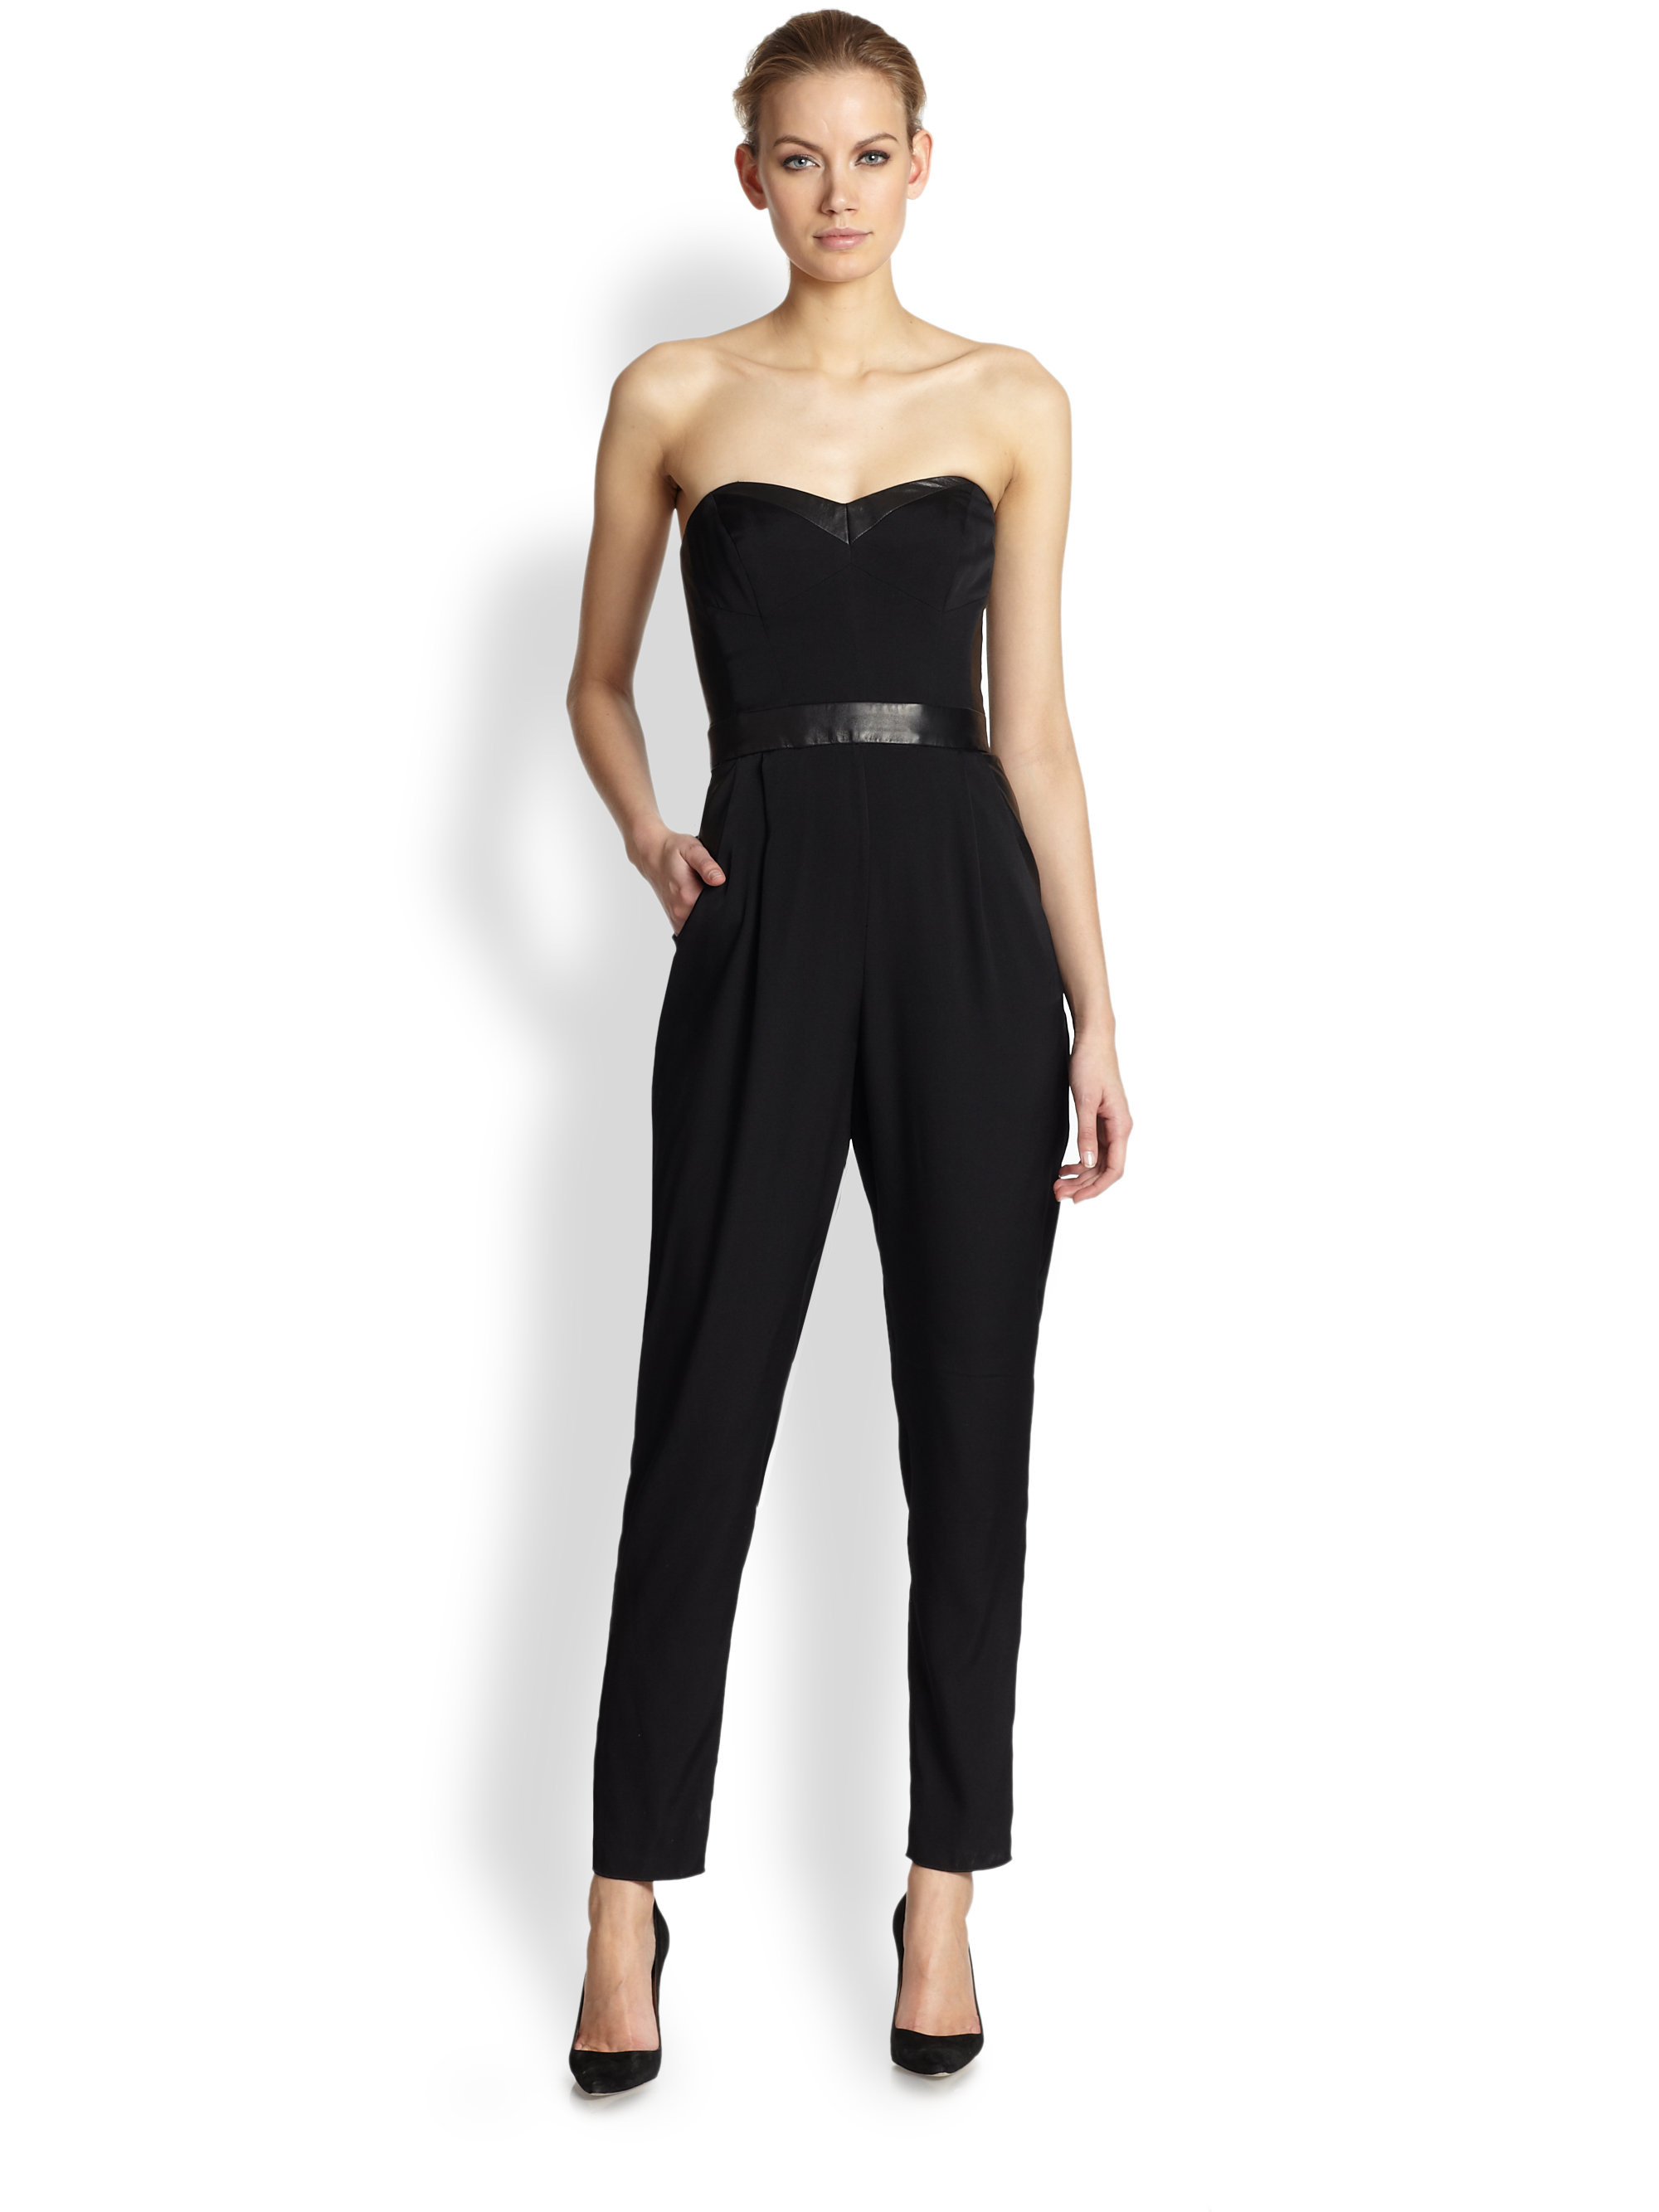 67a4b7826ab5 Lyst - MILLY Strapless Bustier Jumpsuit in Black